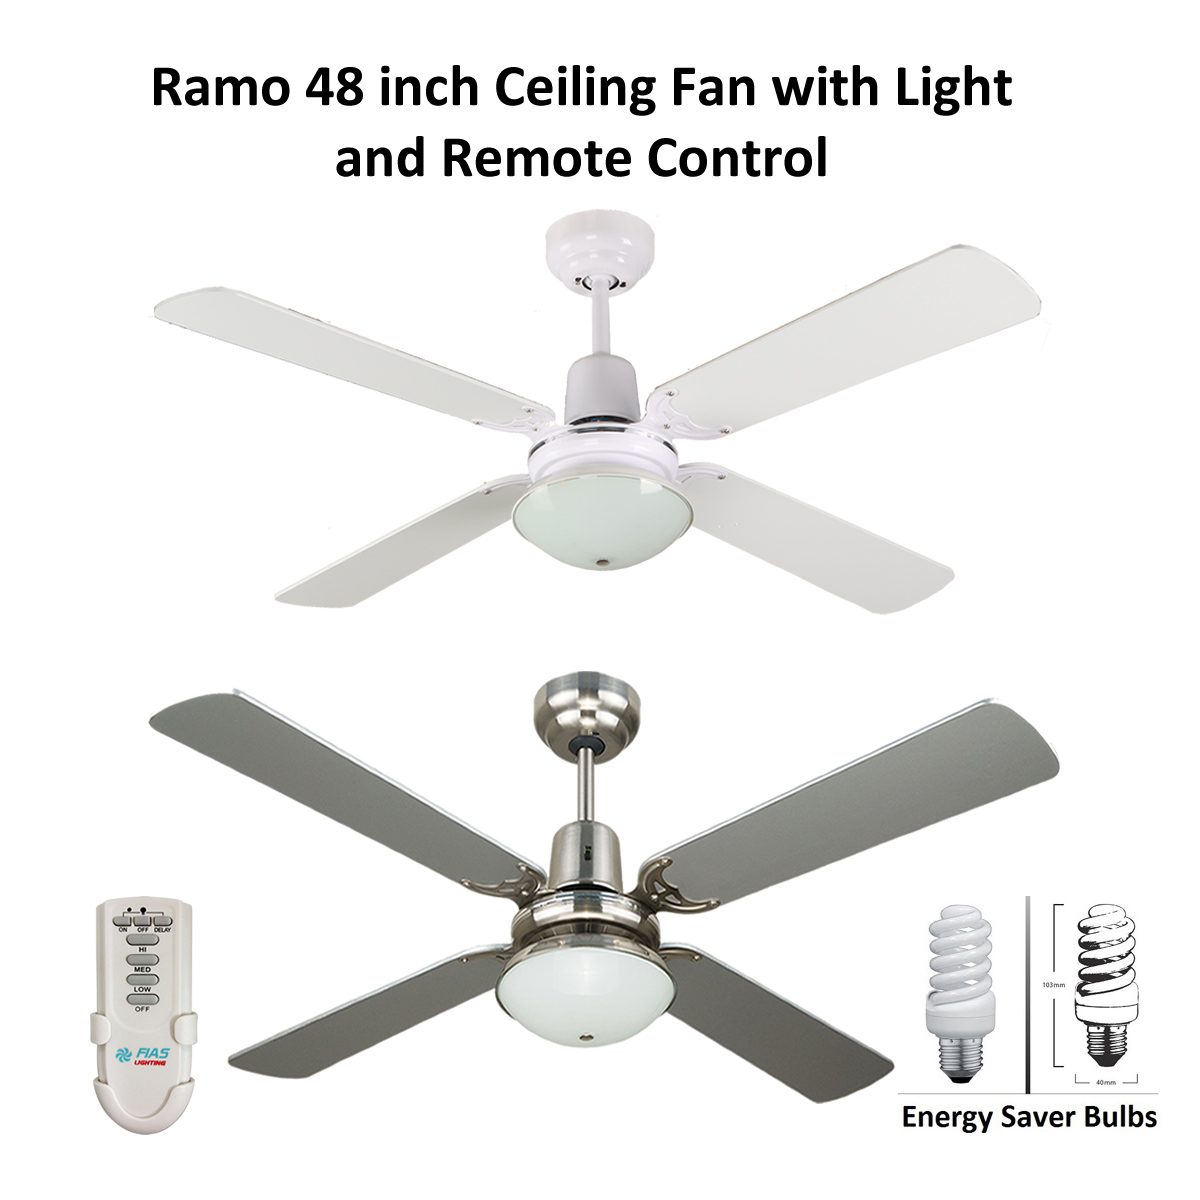 fans fan the in home brushed collection decorators p depot merwry and led indoor remote lights light kit ceiling with control nickel